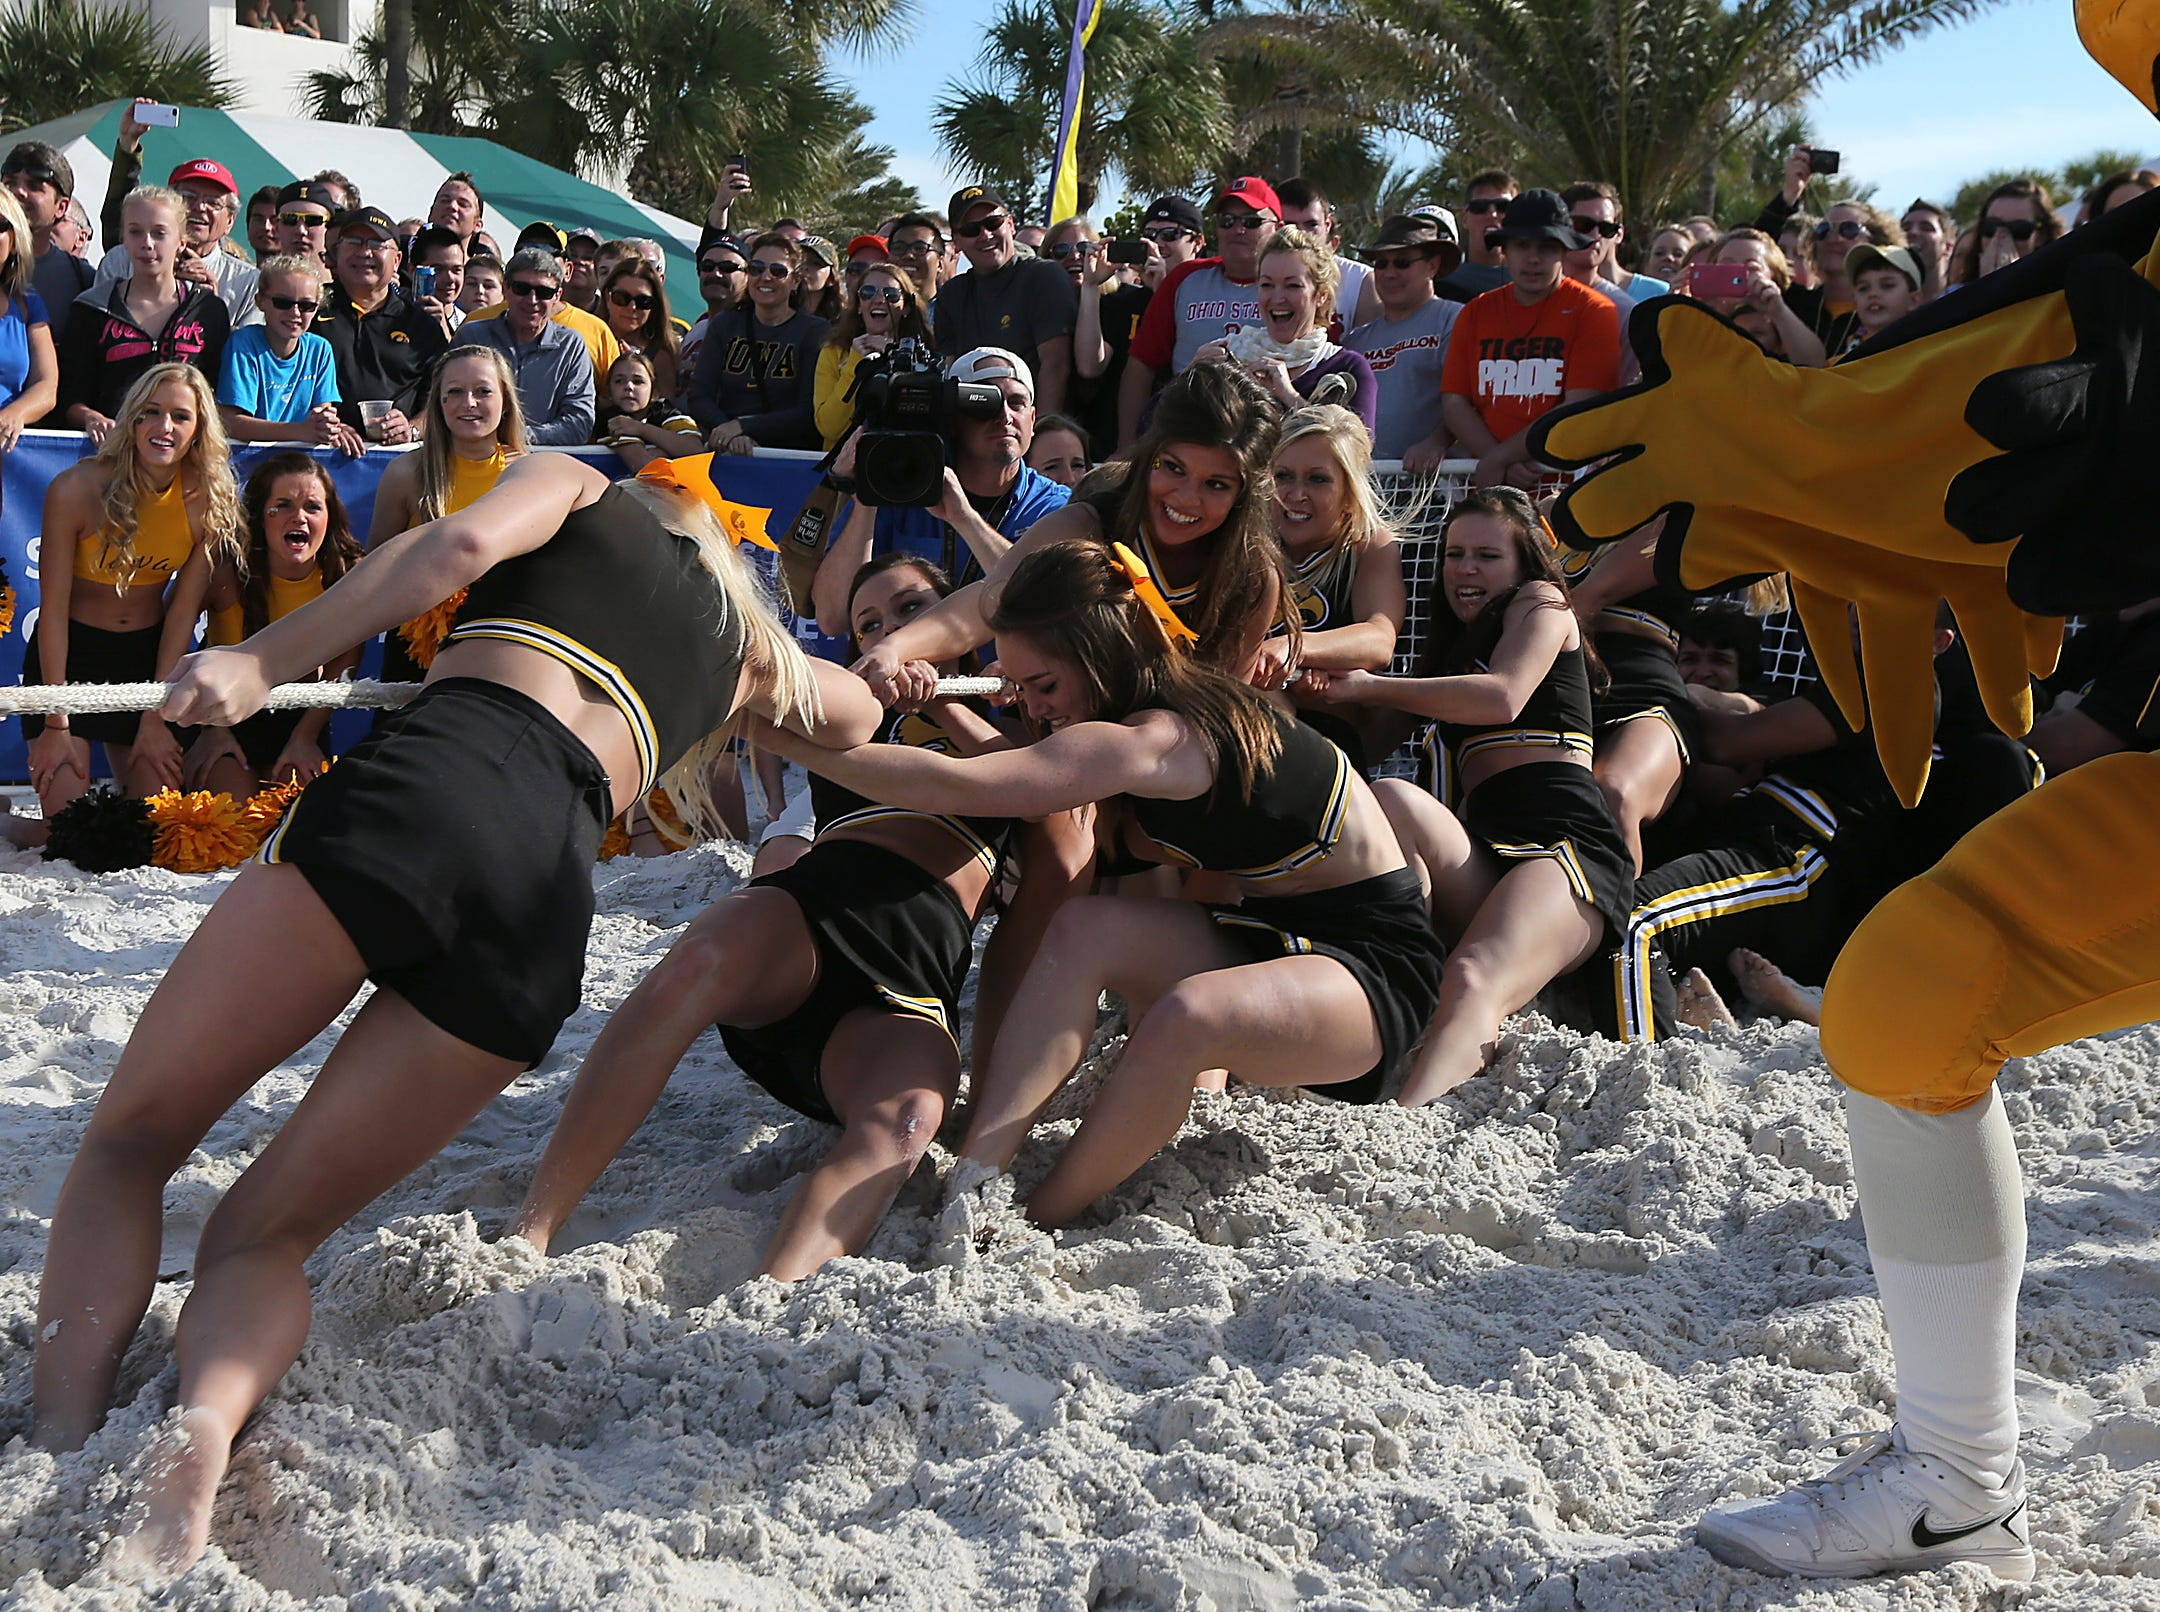 The Iowa Hawkeyes cheerleading squad defeated the LSU cheerleading team in three rounds of tug-of-war on Monday, Dec. 30, 2013, in Clearwater, Florida. (Bryon Houlgrave/The Register)